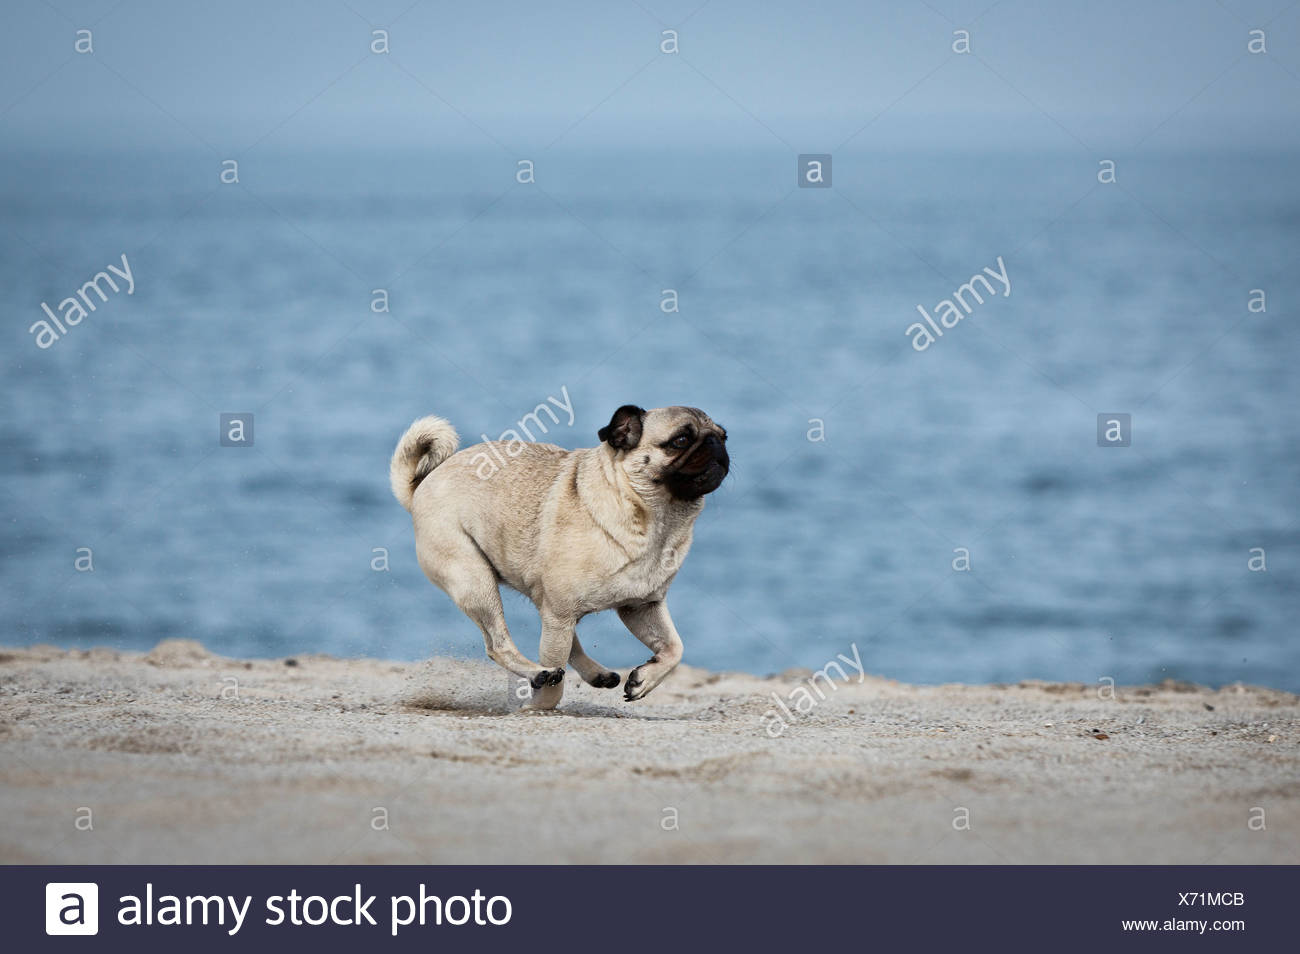 Pug dog running at beach, Sylt, Schleswig-Holstein, Germany, Europe - Stock Image